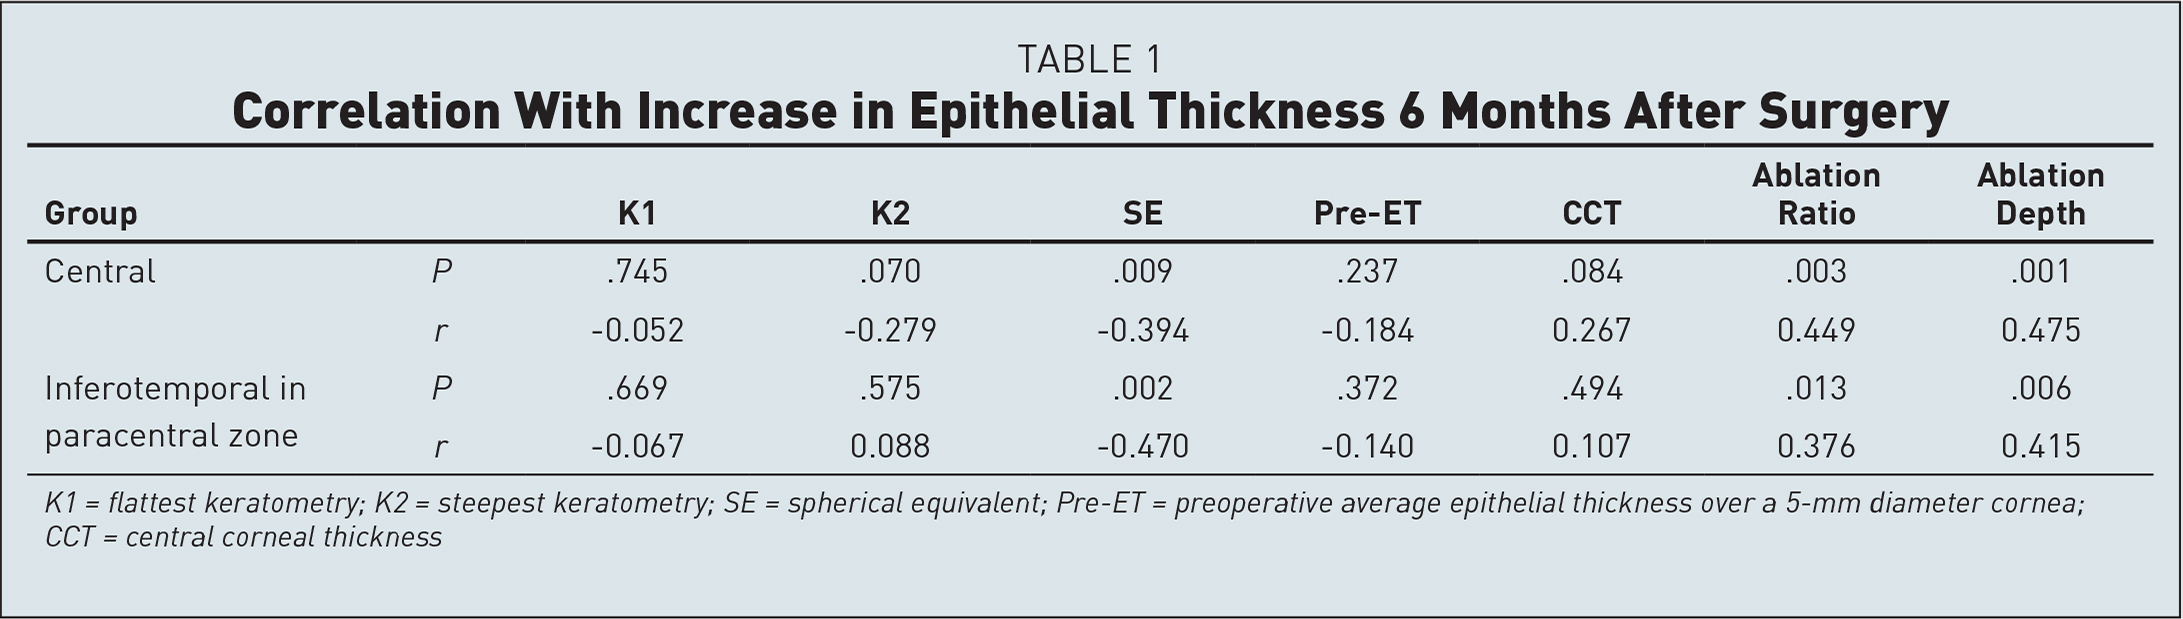 Correlation With Increase in Epithelial Thickness 6 Months After Surgery